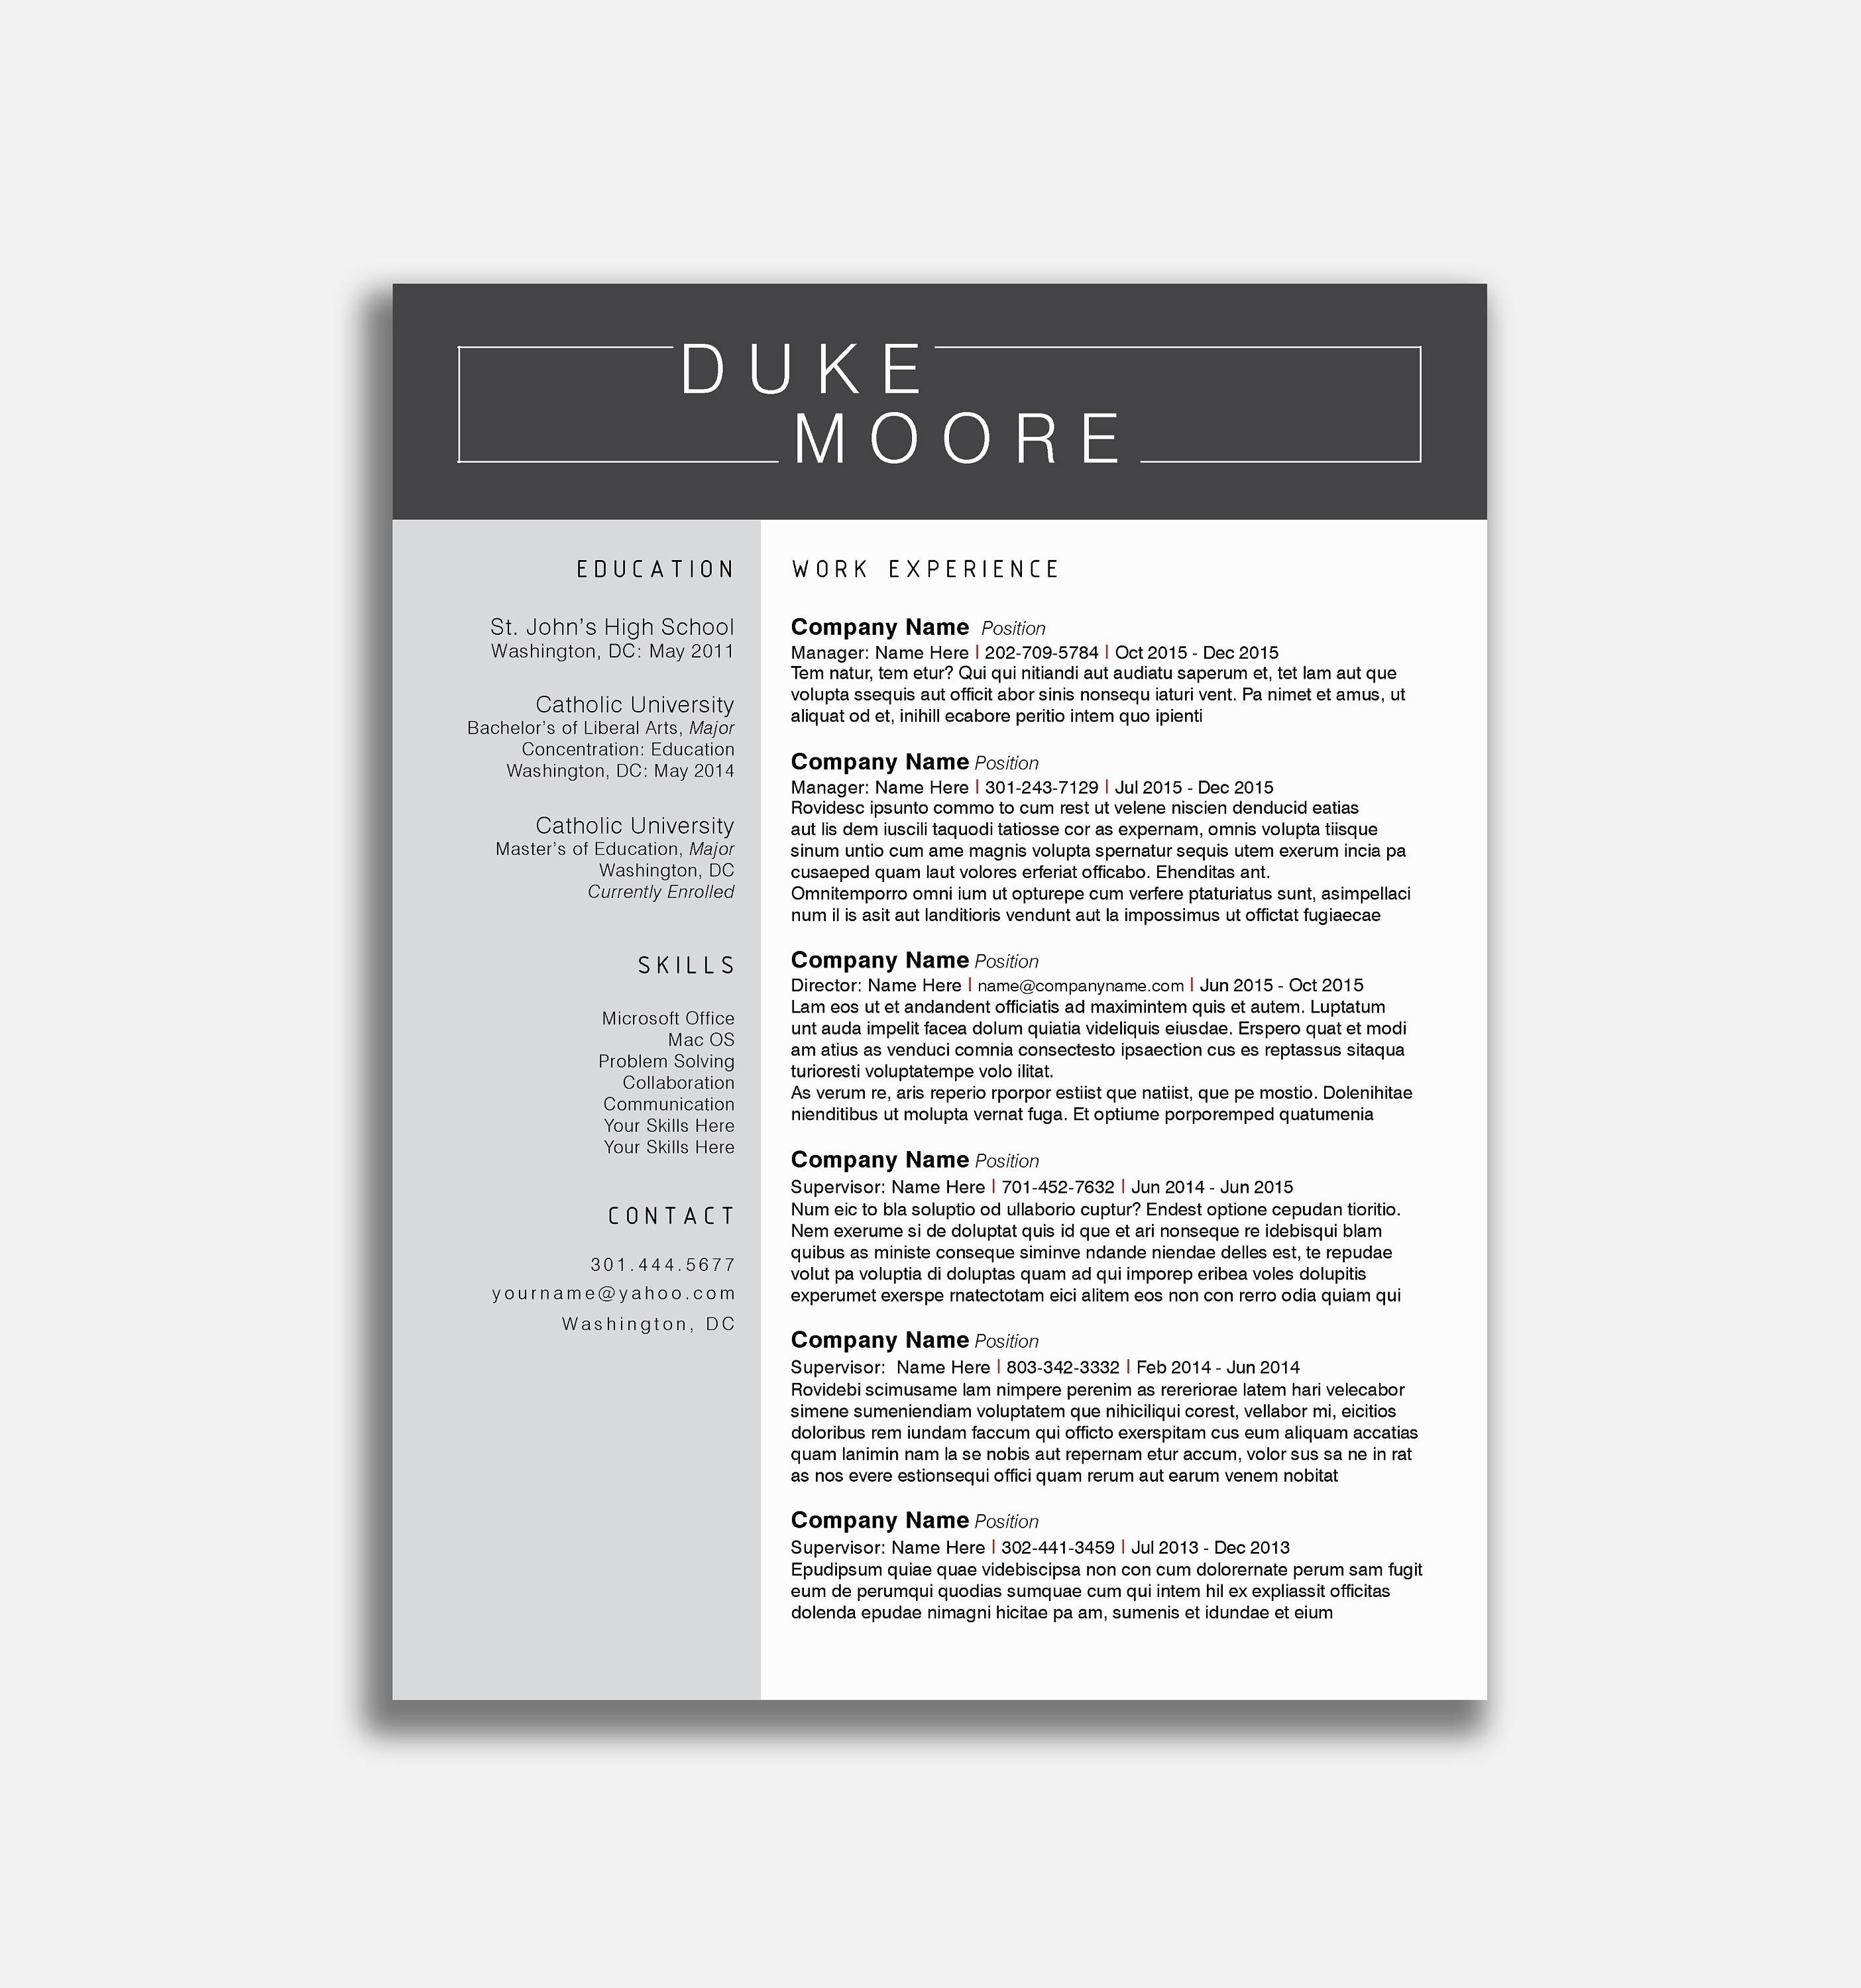 Sample Resumes for Insurance Agents - Collection Agent Resume New Sample Resume Insurance Agent Resume